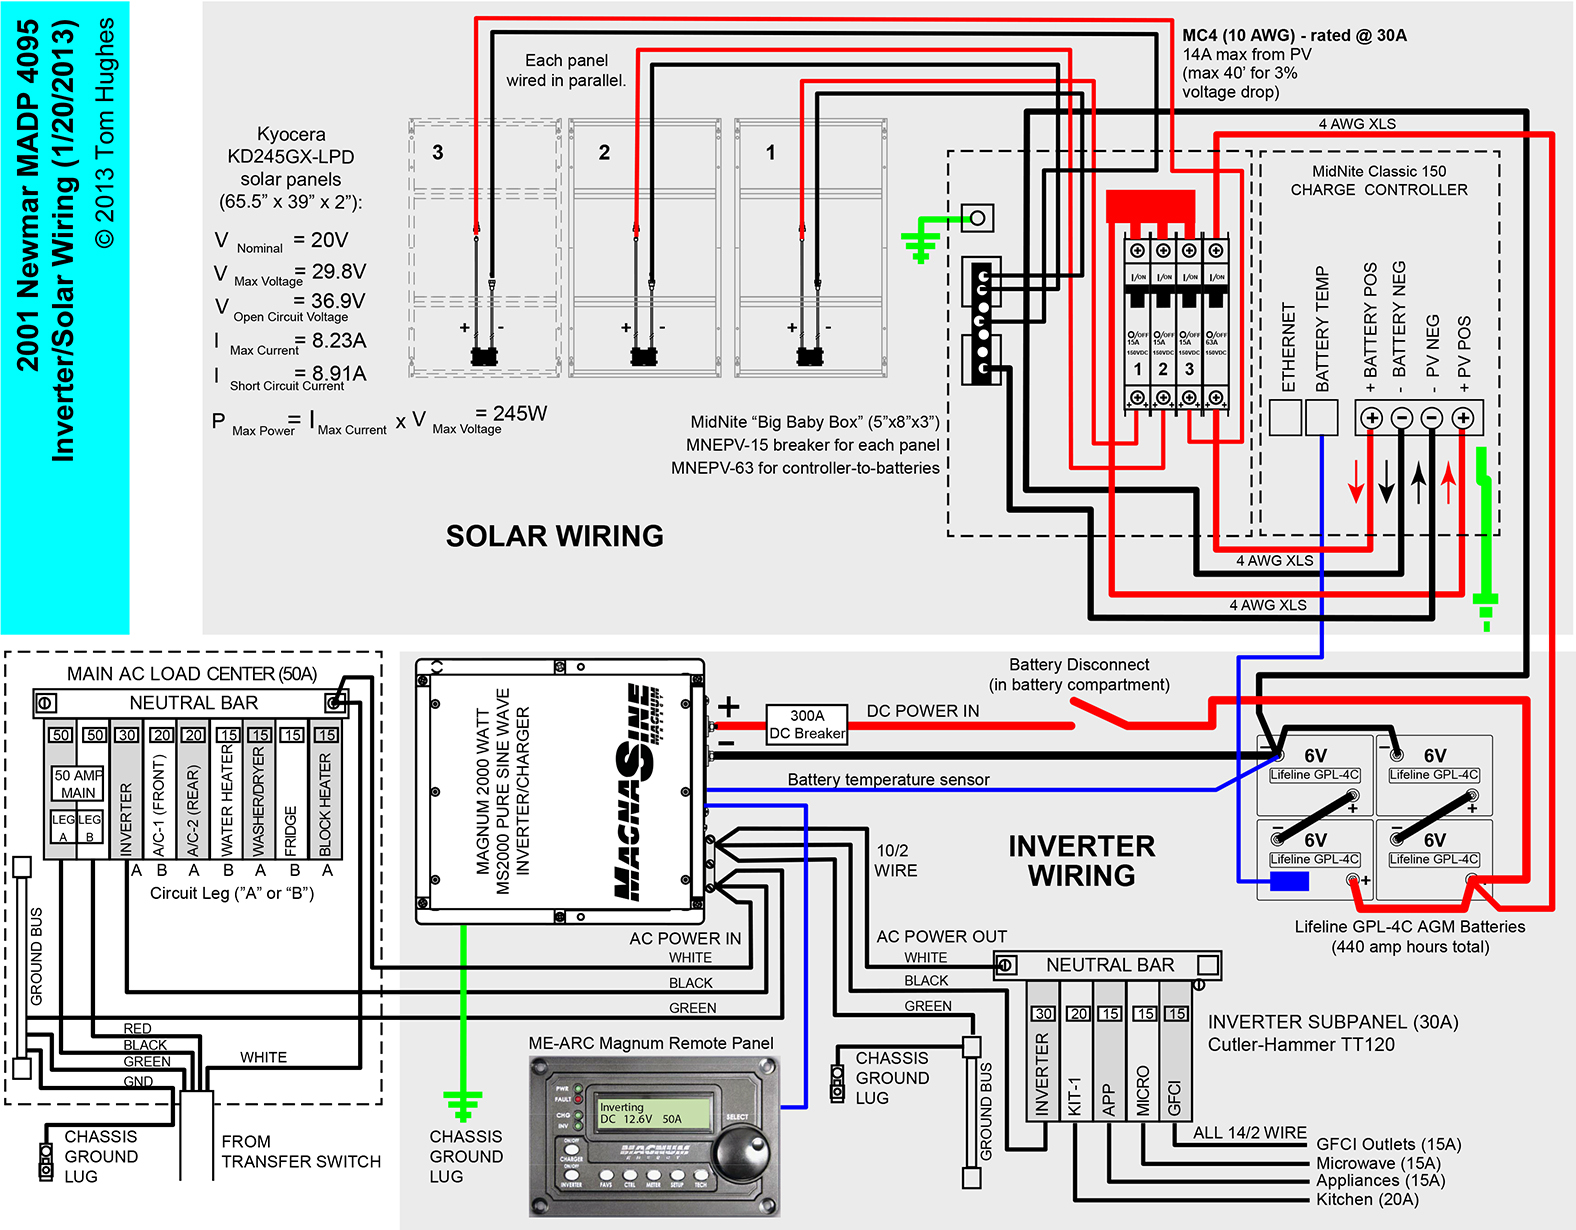 ms2000_newmar_inverter_wiring_01_20_2013 rv inverter diagram rv inverter transfer switch \u2022 wiring diagrams power inverter remote switch wiring diagram at reclaimingppi.co